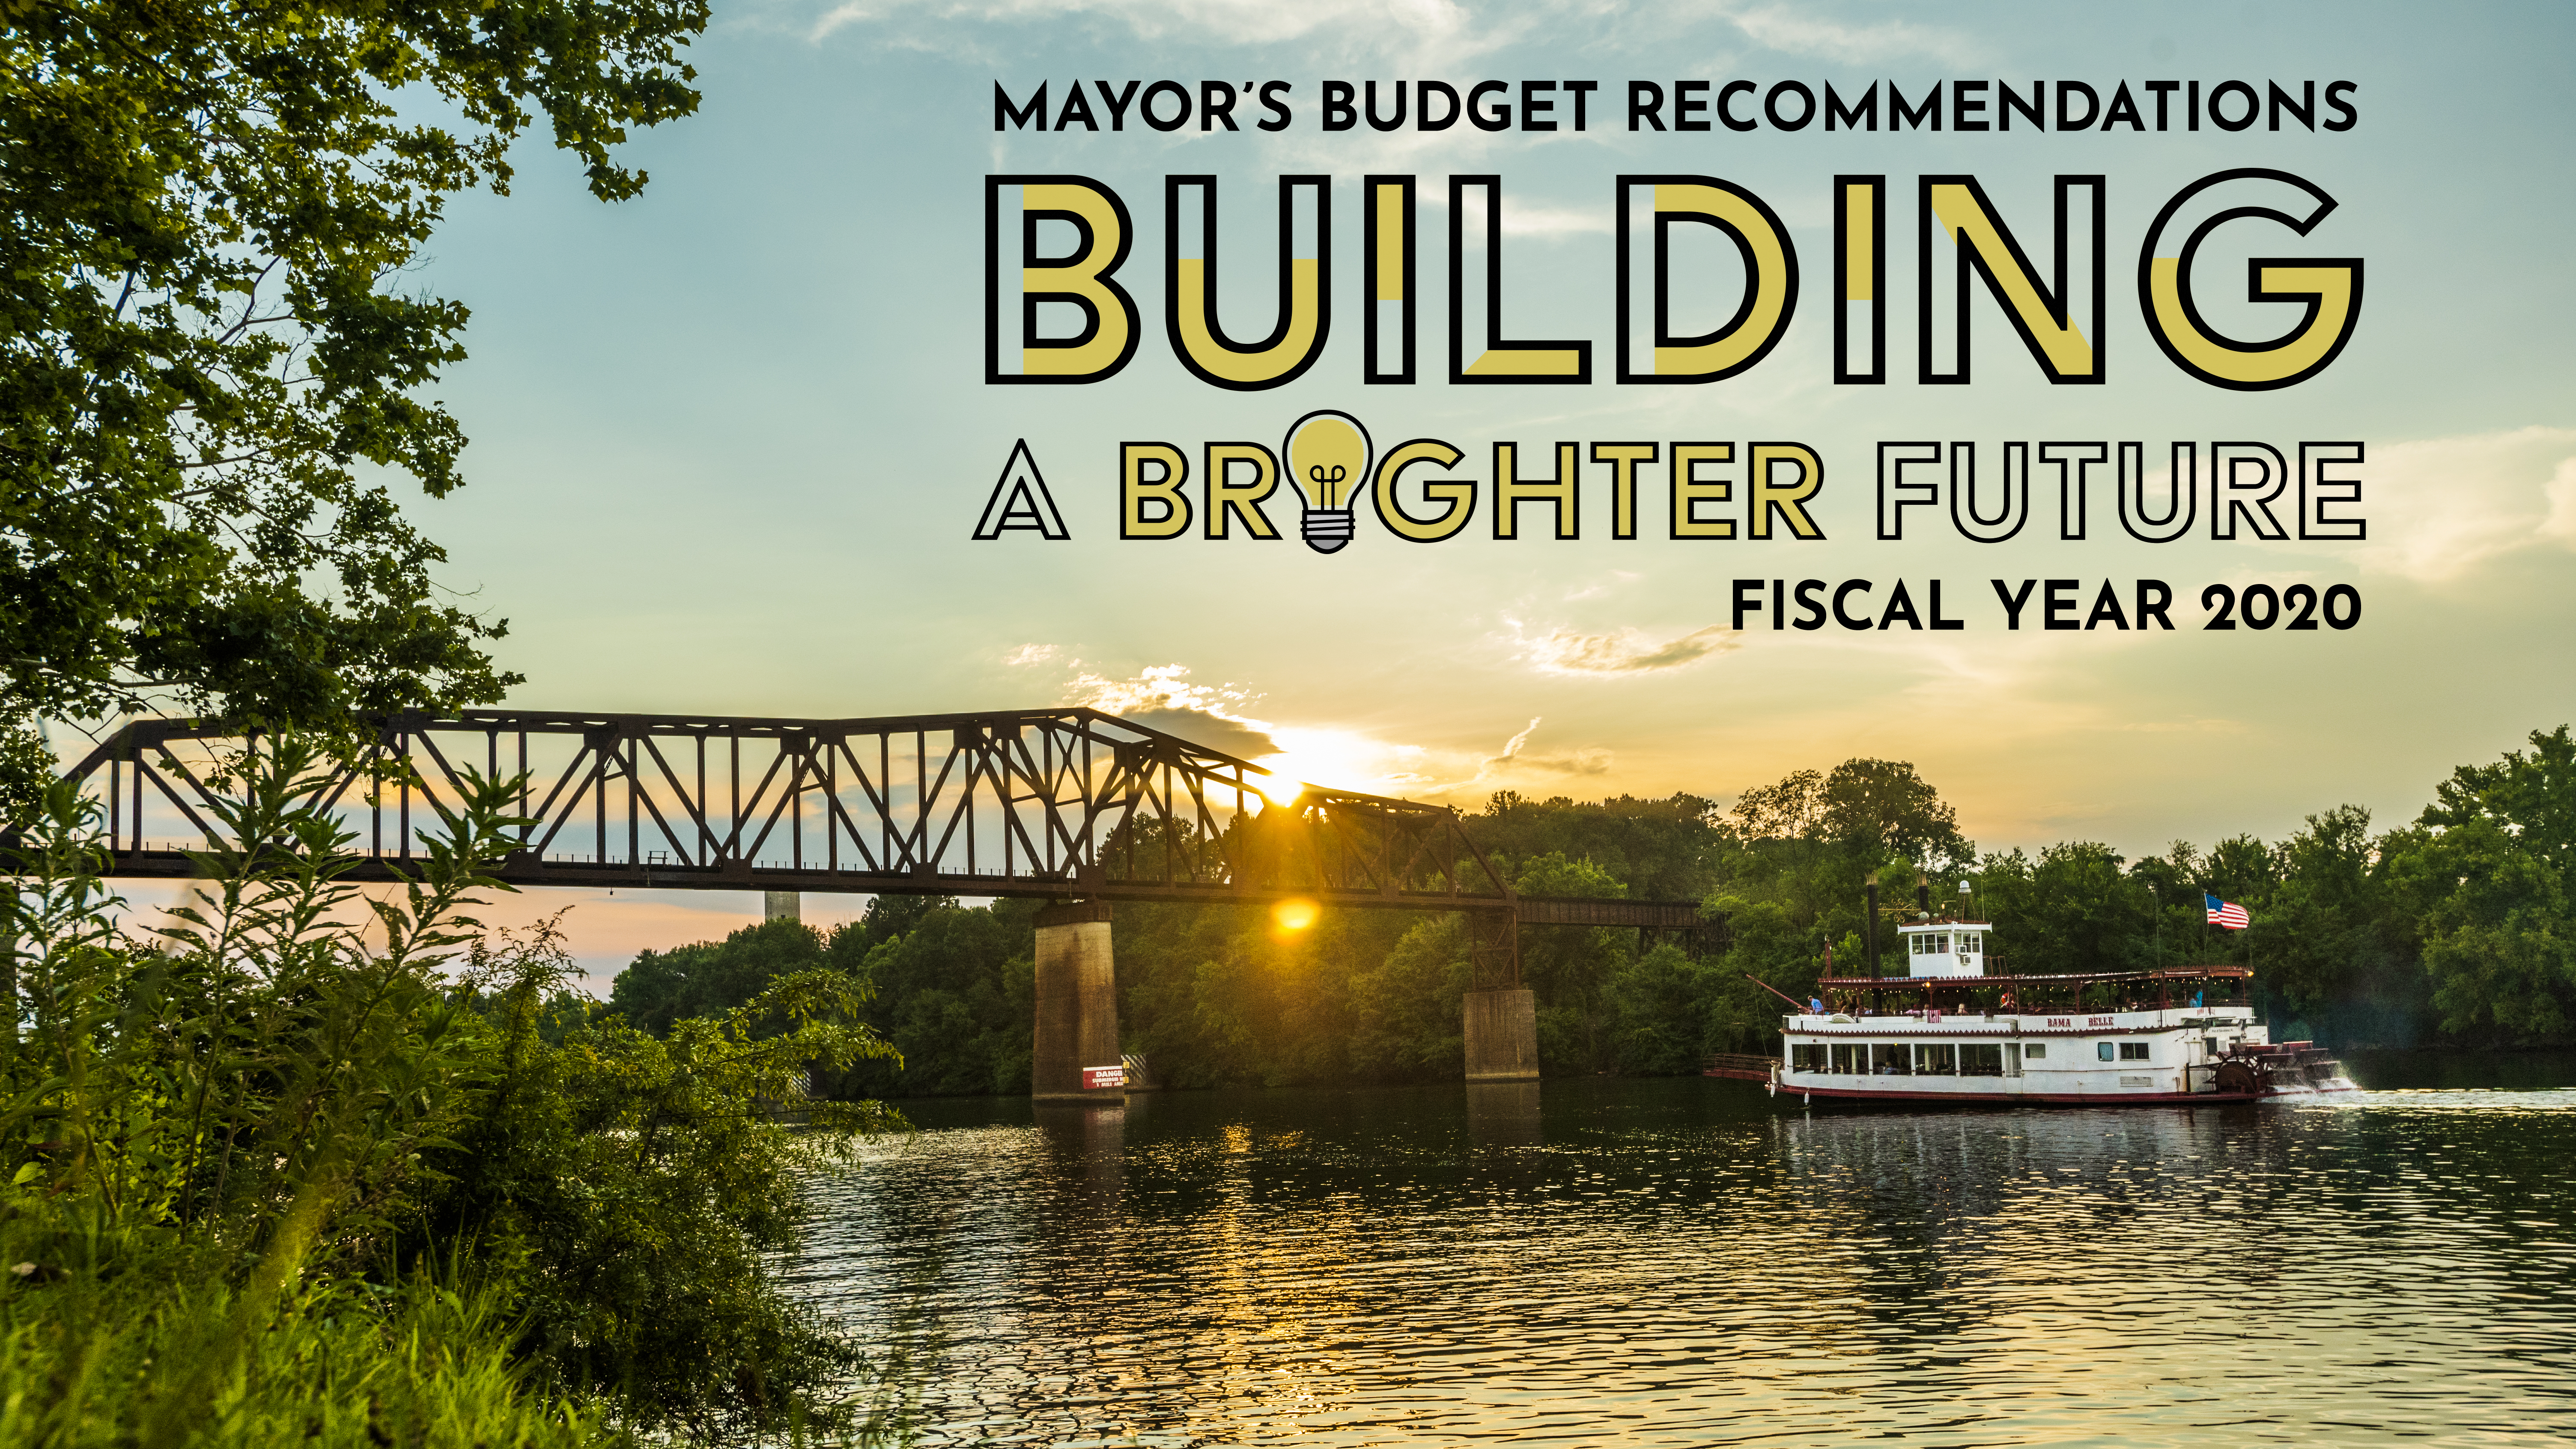 Building a Brighter Future: Mayor's Budget Recommendations for Fiscal Year 2020